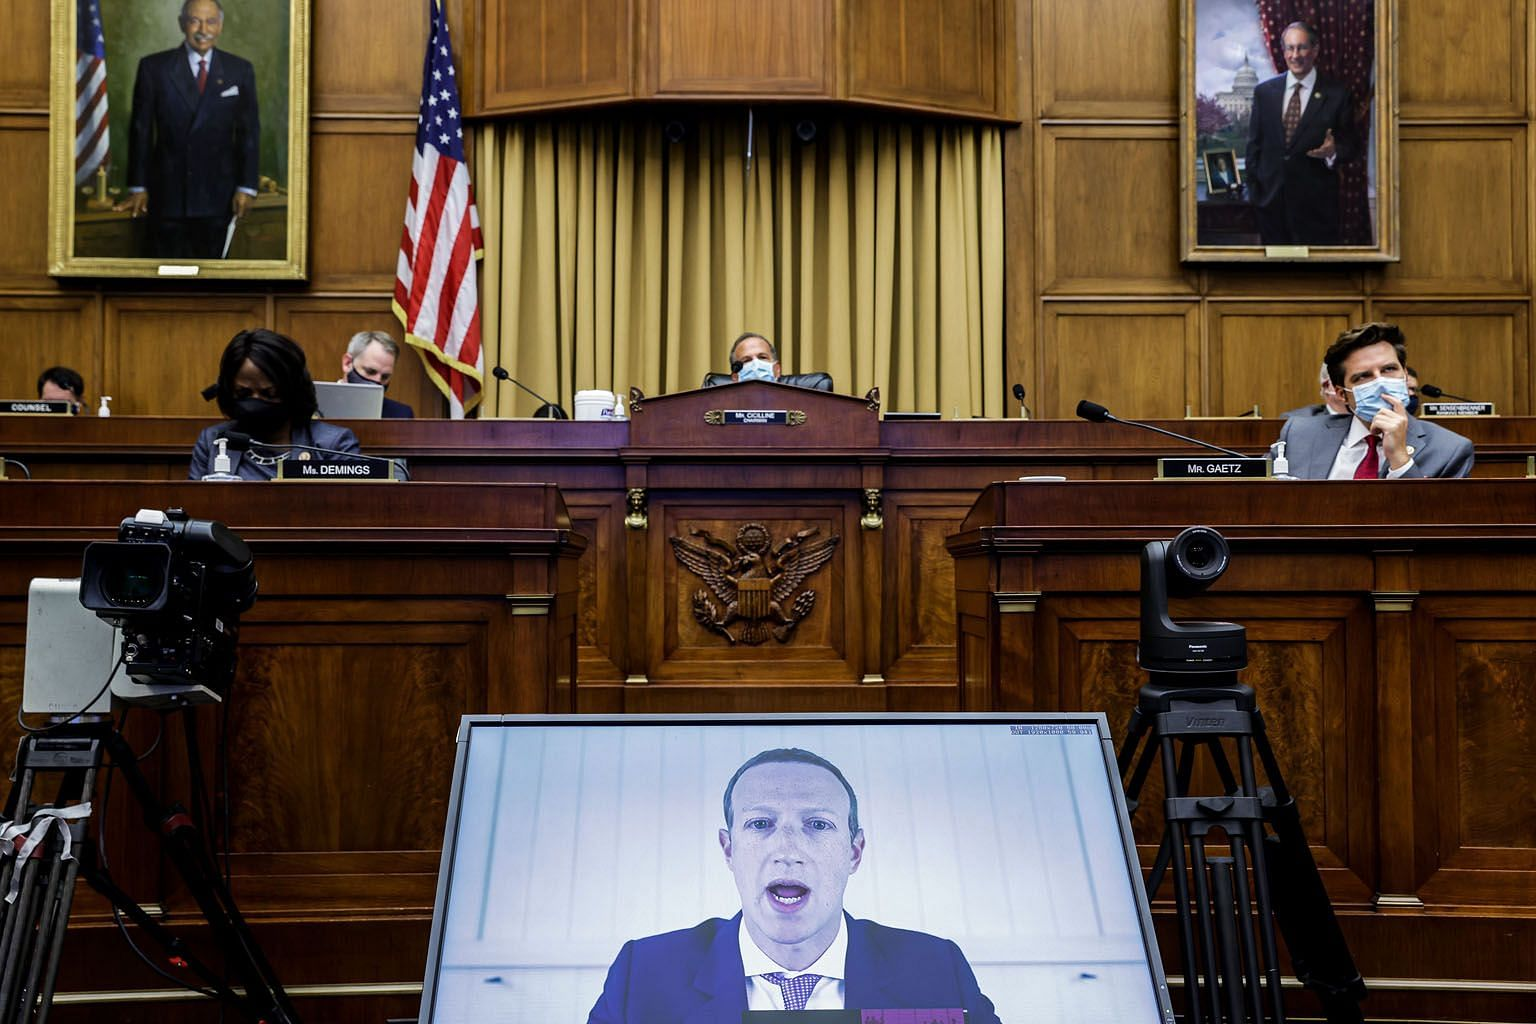 Facebook chief executive Mark Zuckerberg testifying before the US House Judiciary Subcommittee on Antitrust, Commercial and Administrative Law on online platforms and market power, at Capitol Hill, Washington, on Wednesday.